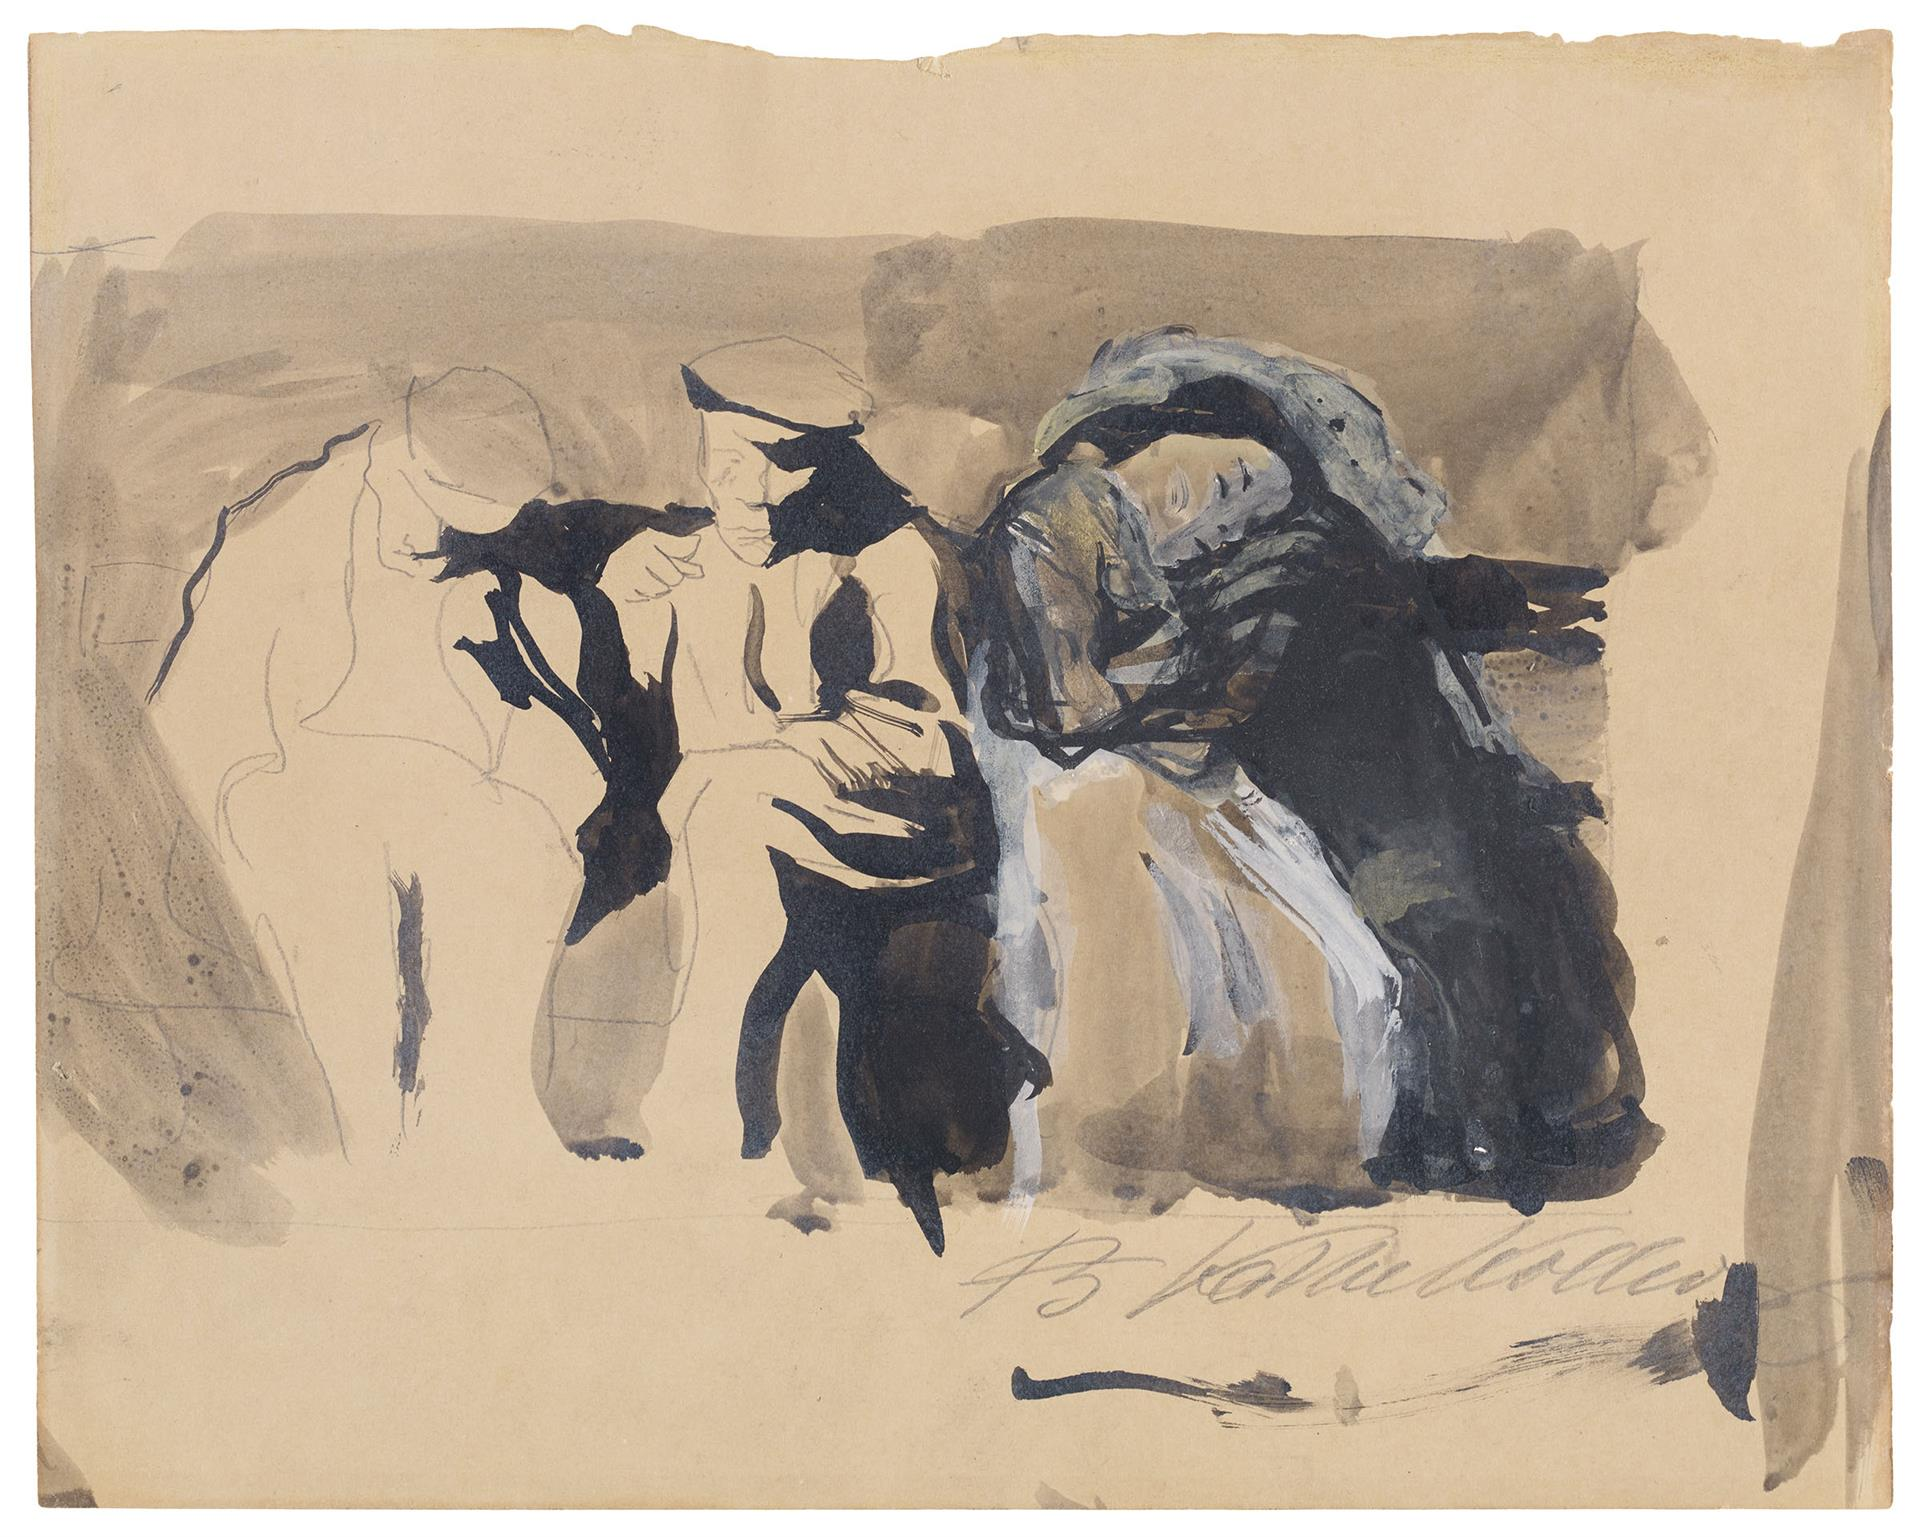 Käthe Kollwitz, Two Men and a Pair of Lovers on a Bench, 1904, graphite and ink, white highlights on cream-coloured paper, NT (287a), Cologne Kollwitz Collection © Käthe Kollwitz Museum Köln